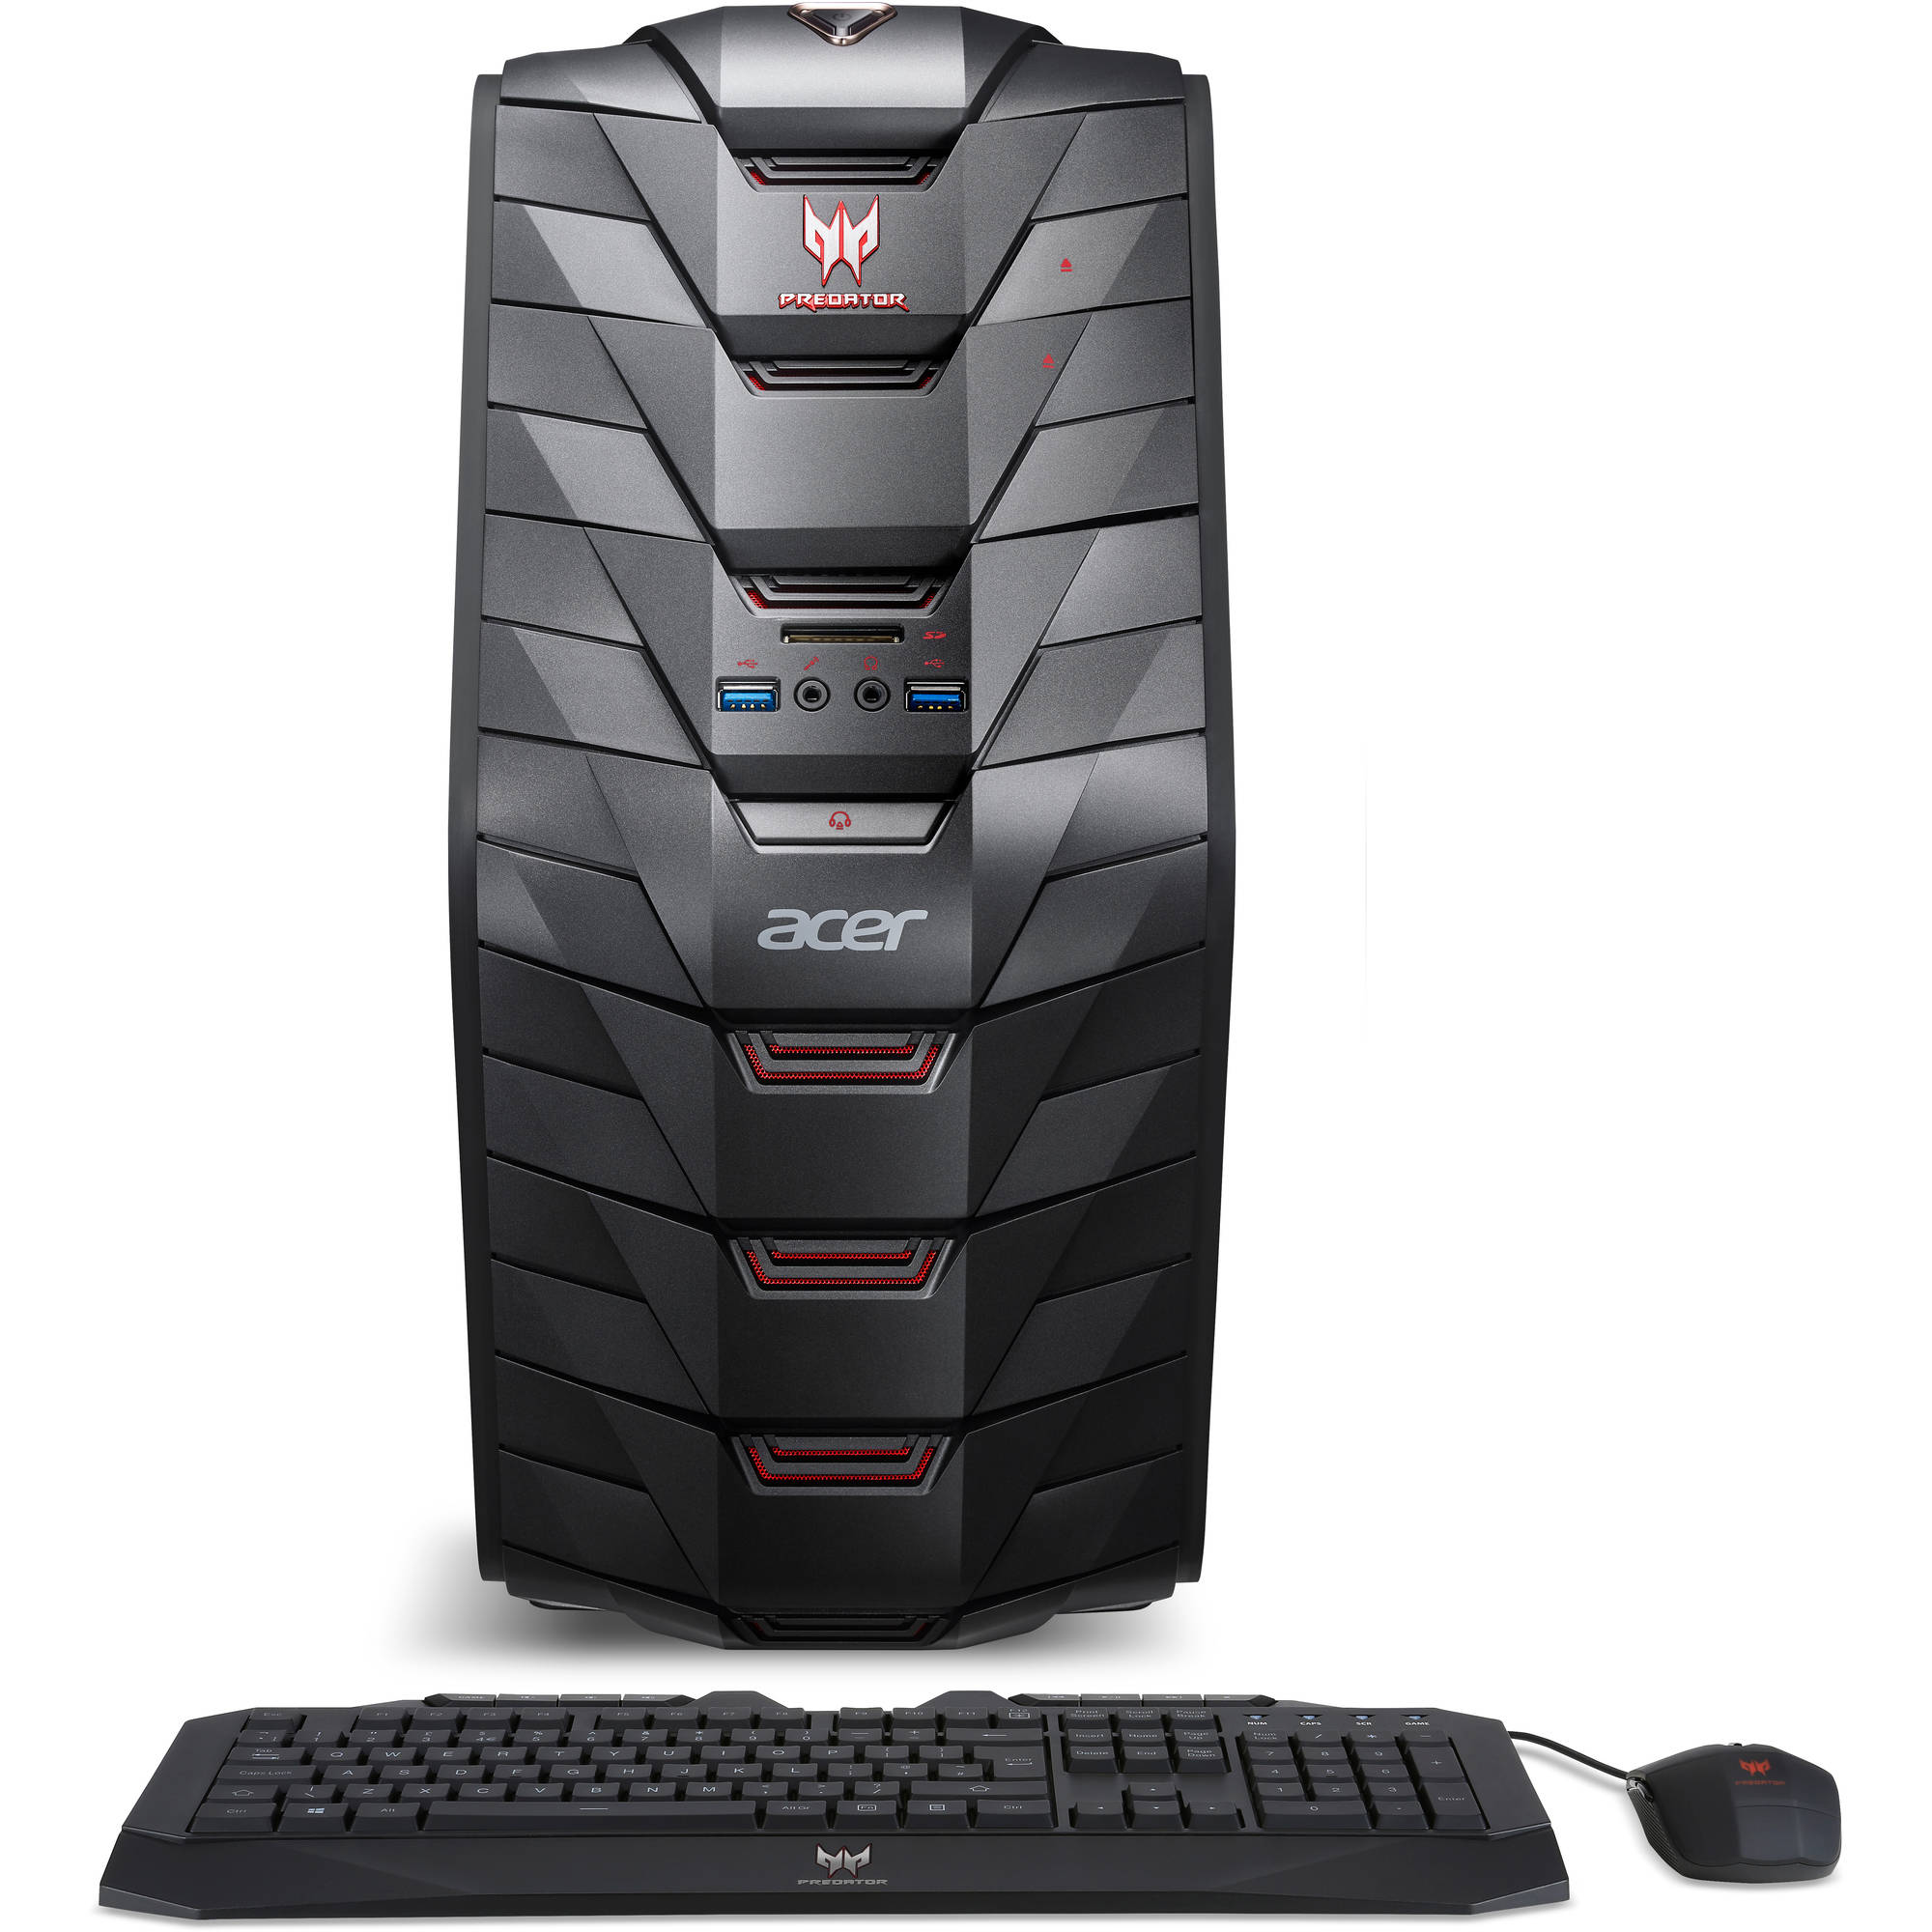 Acer Predator AG3-710-UW11 Desktop PC with Intel Core i5-6400 Processor, 8GB Memory, 1TB Hard Drive and... by Acer